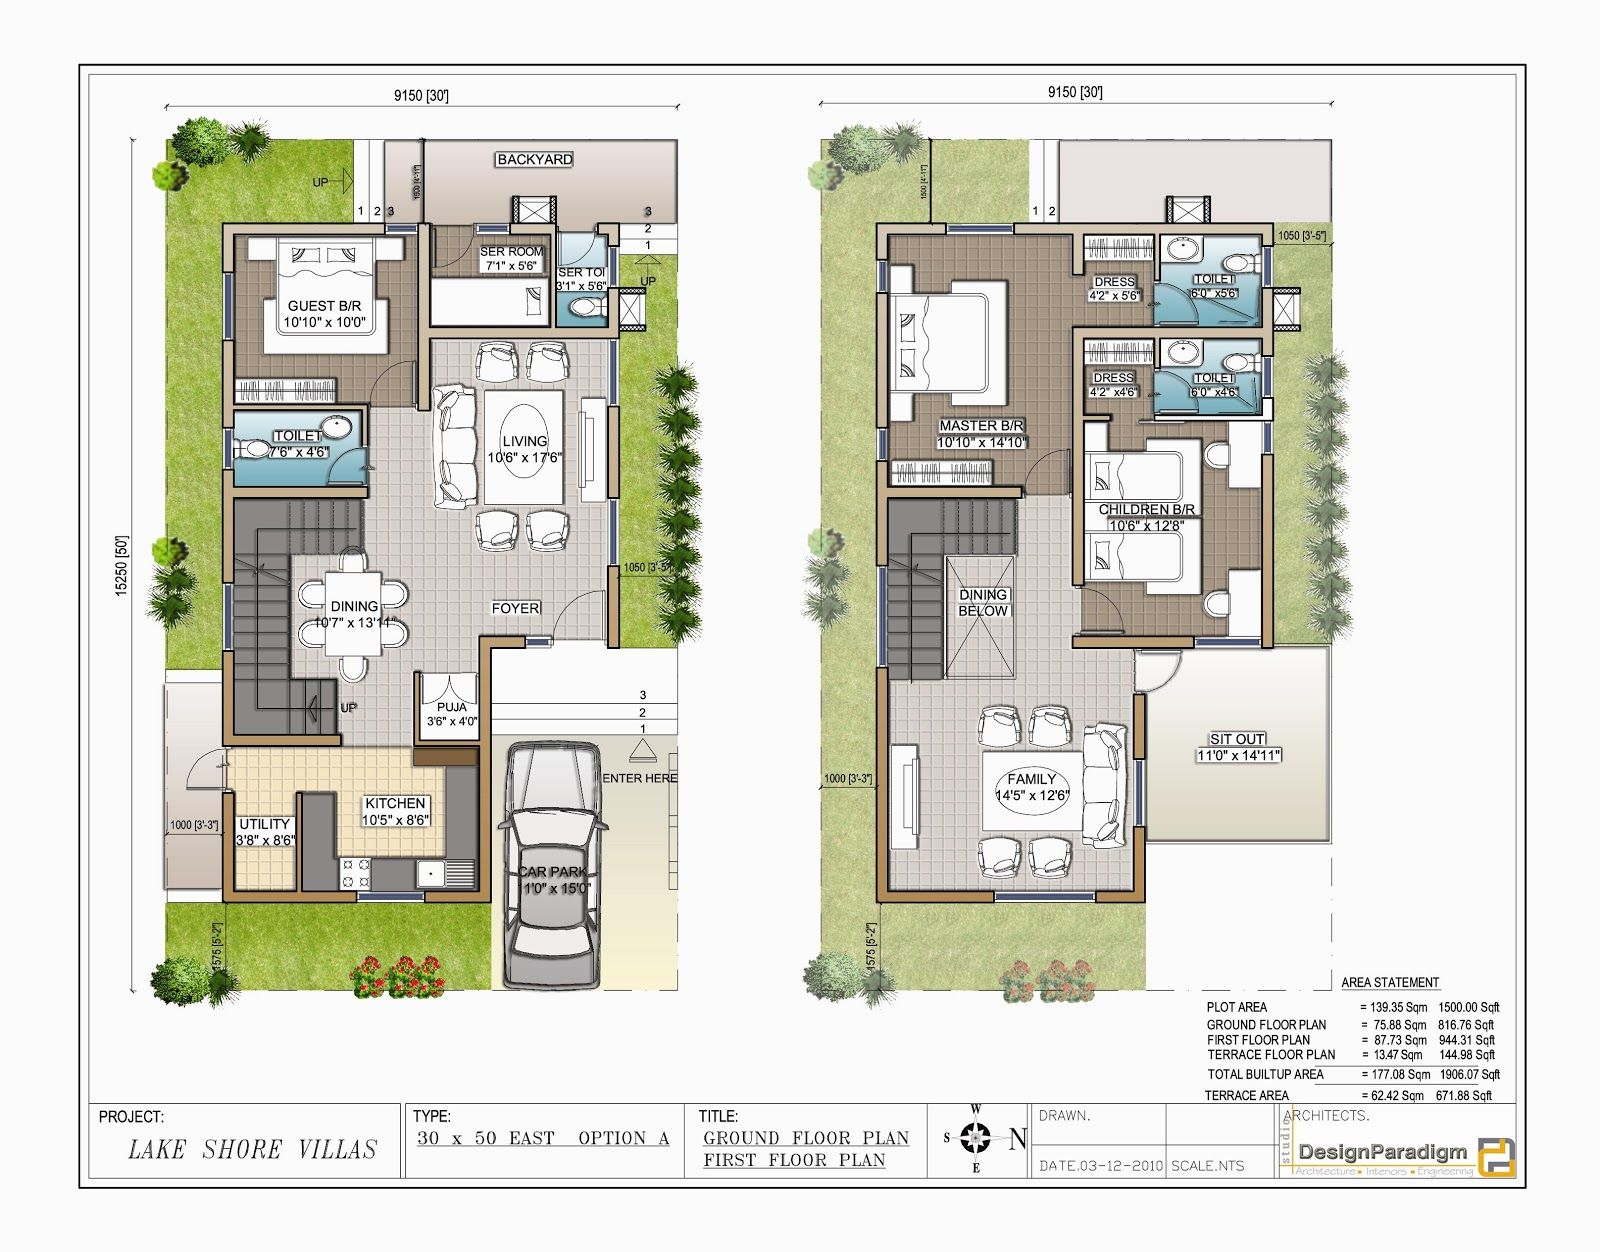 House Plan East Facing Home Plans India Home Plans Blueprints 70345 20x30 House Plans 30x50 House Plans Duplex House Plans